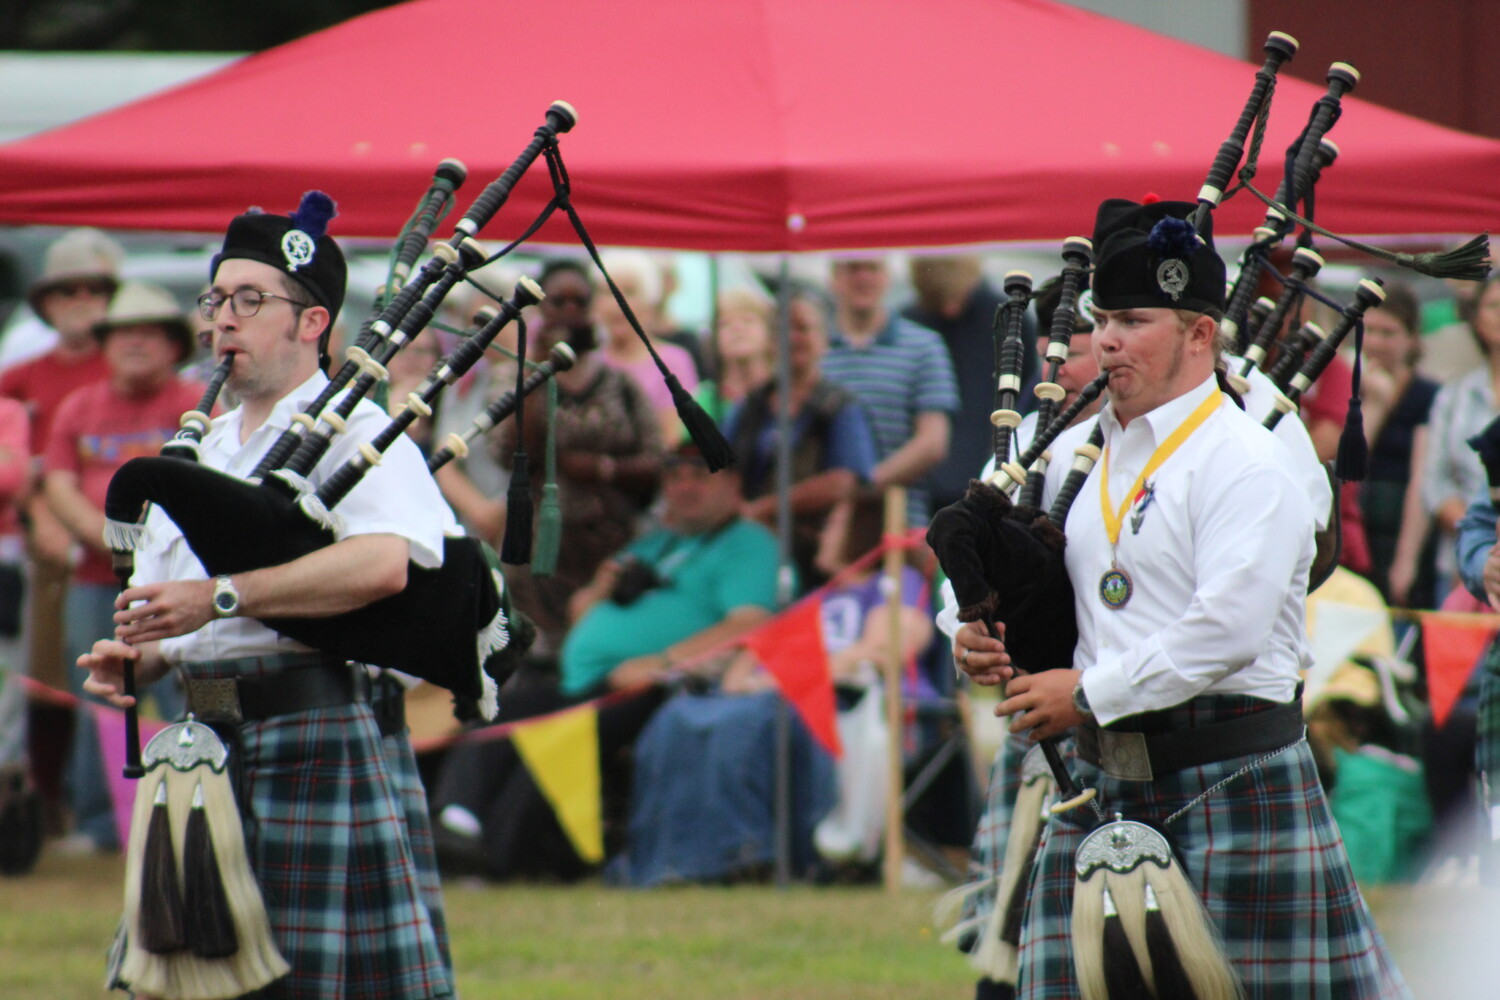 Clans keep traditions alive at annual Scottish Festival and Highland Games in Topsham - CentralMaine.com